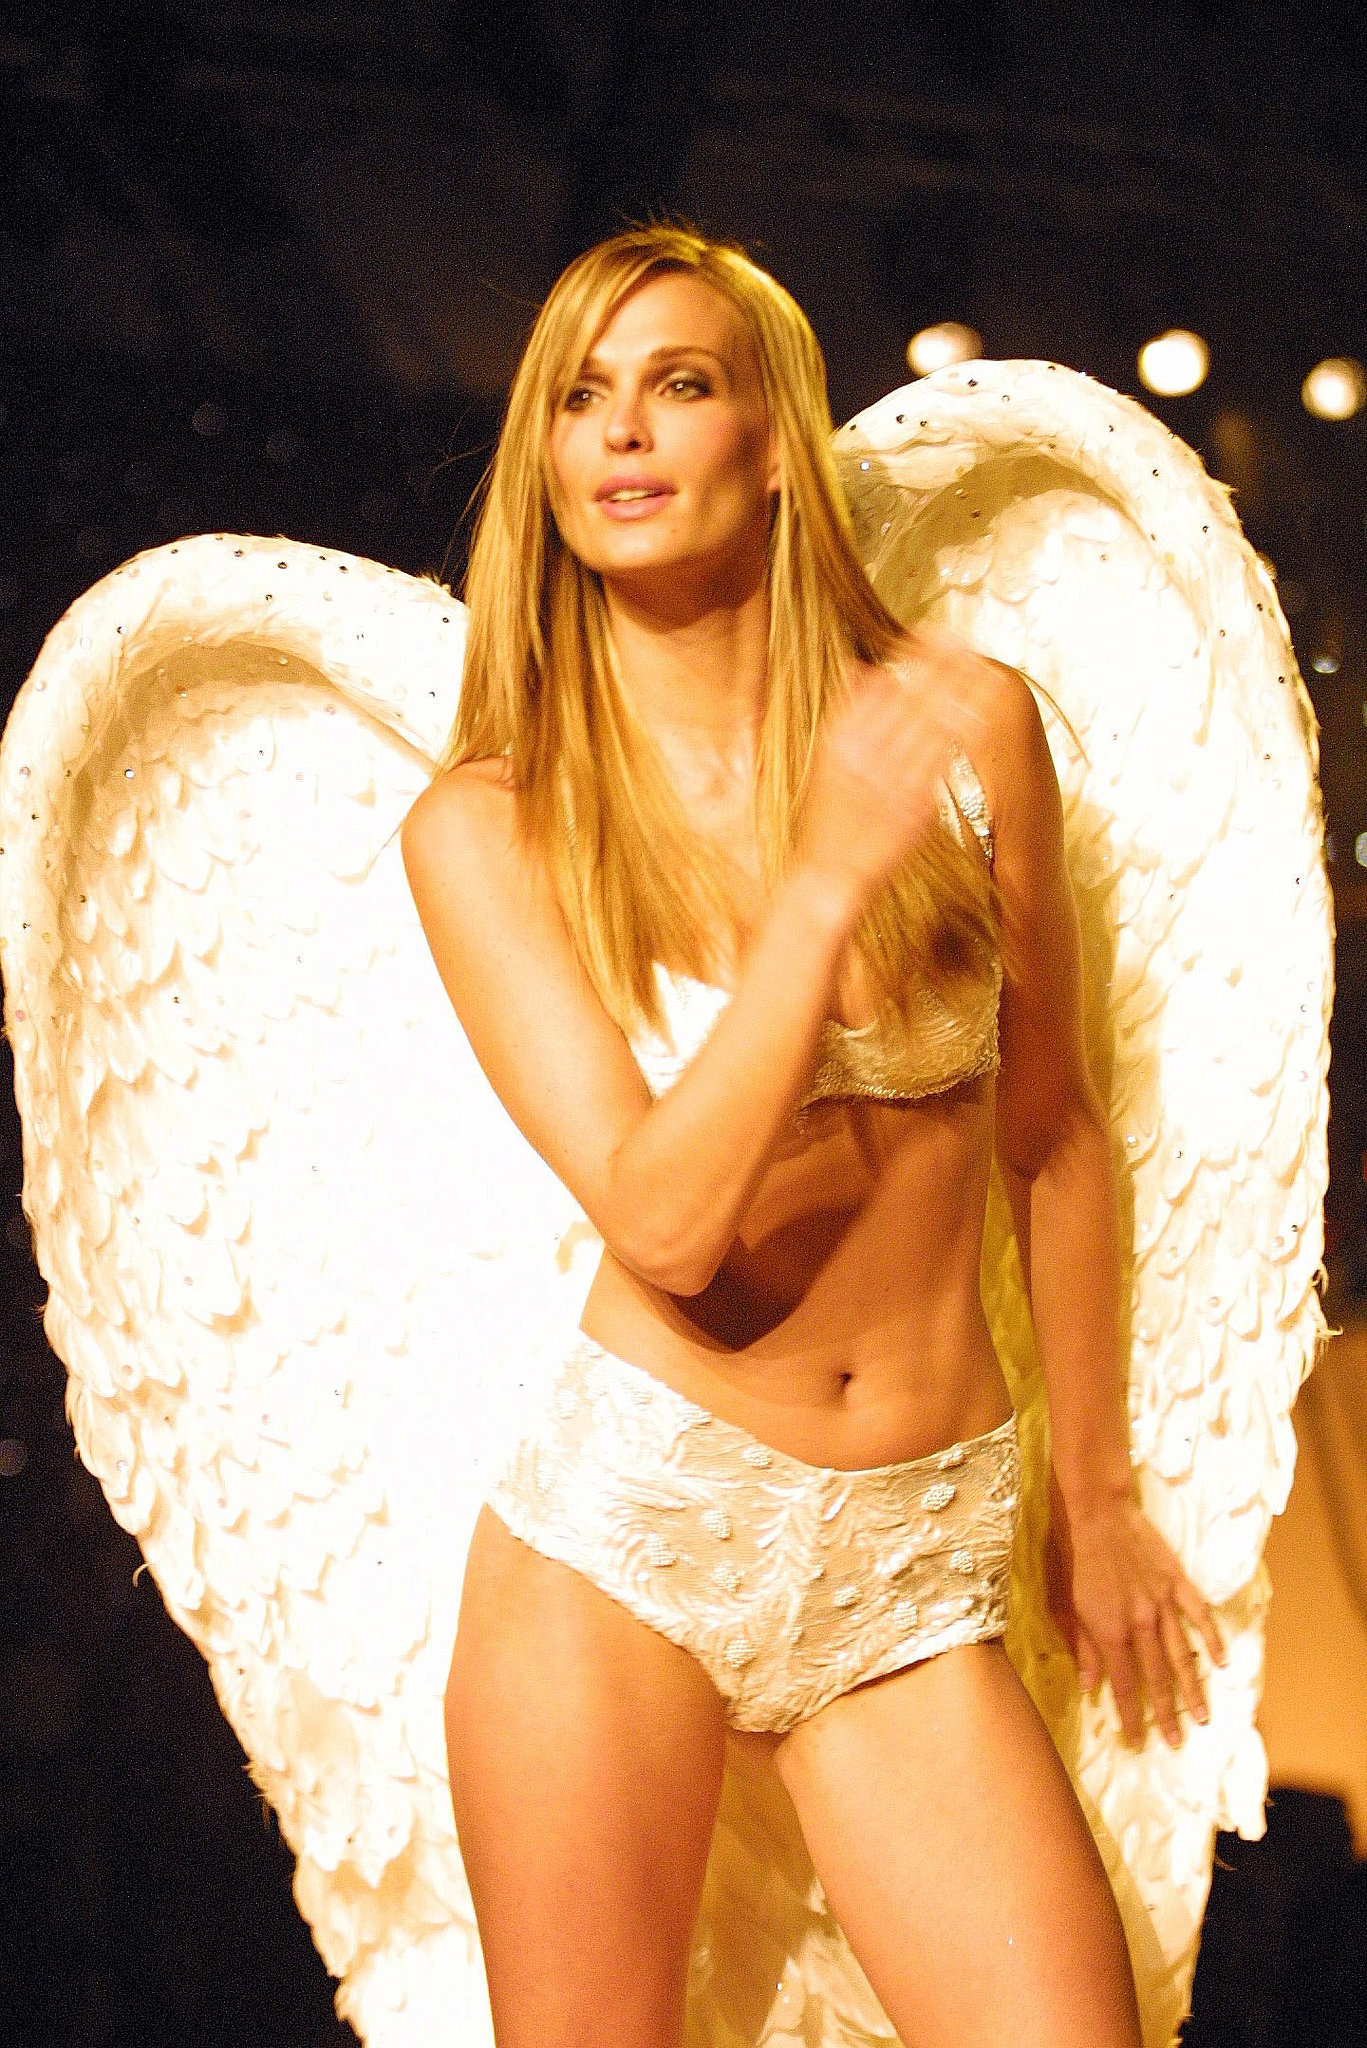 Molly Sims wore an all-white ensemble on the runway in 2001.